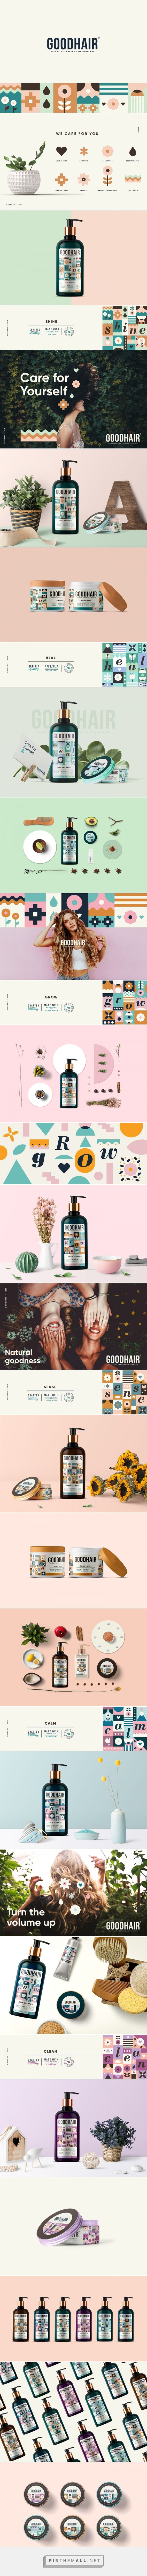 GoodHair Naturally Crafted Hair Product Packaging by Meroo Seth | Fivestar Branding Agency – Design and Branding Agency & Curated Inspiration Gallery #haircare #haircarepackaging #packaging #package #packaginginspiration #packagedesign #design #designinspiration